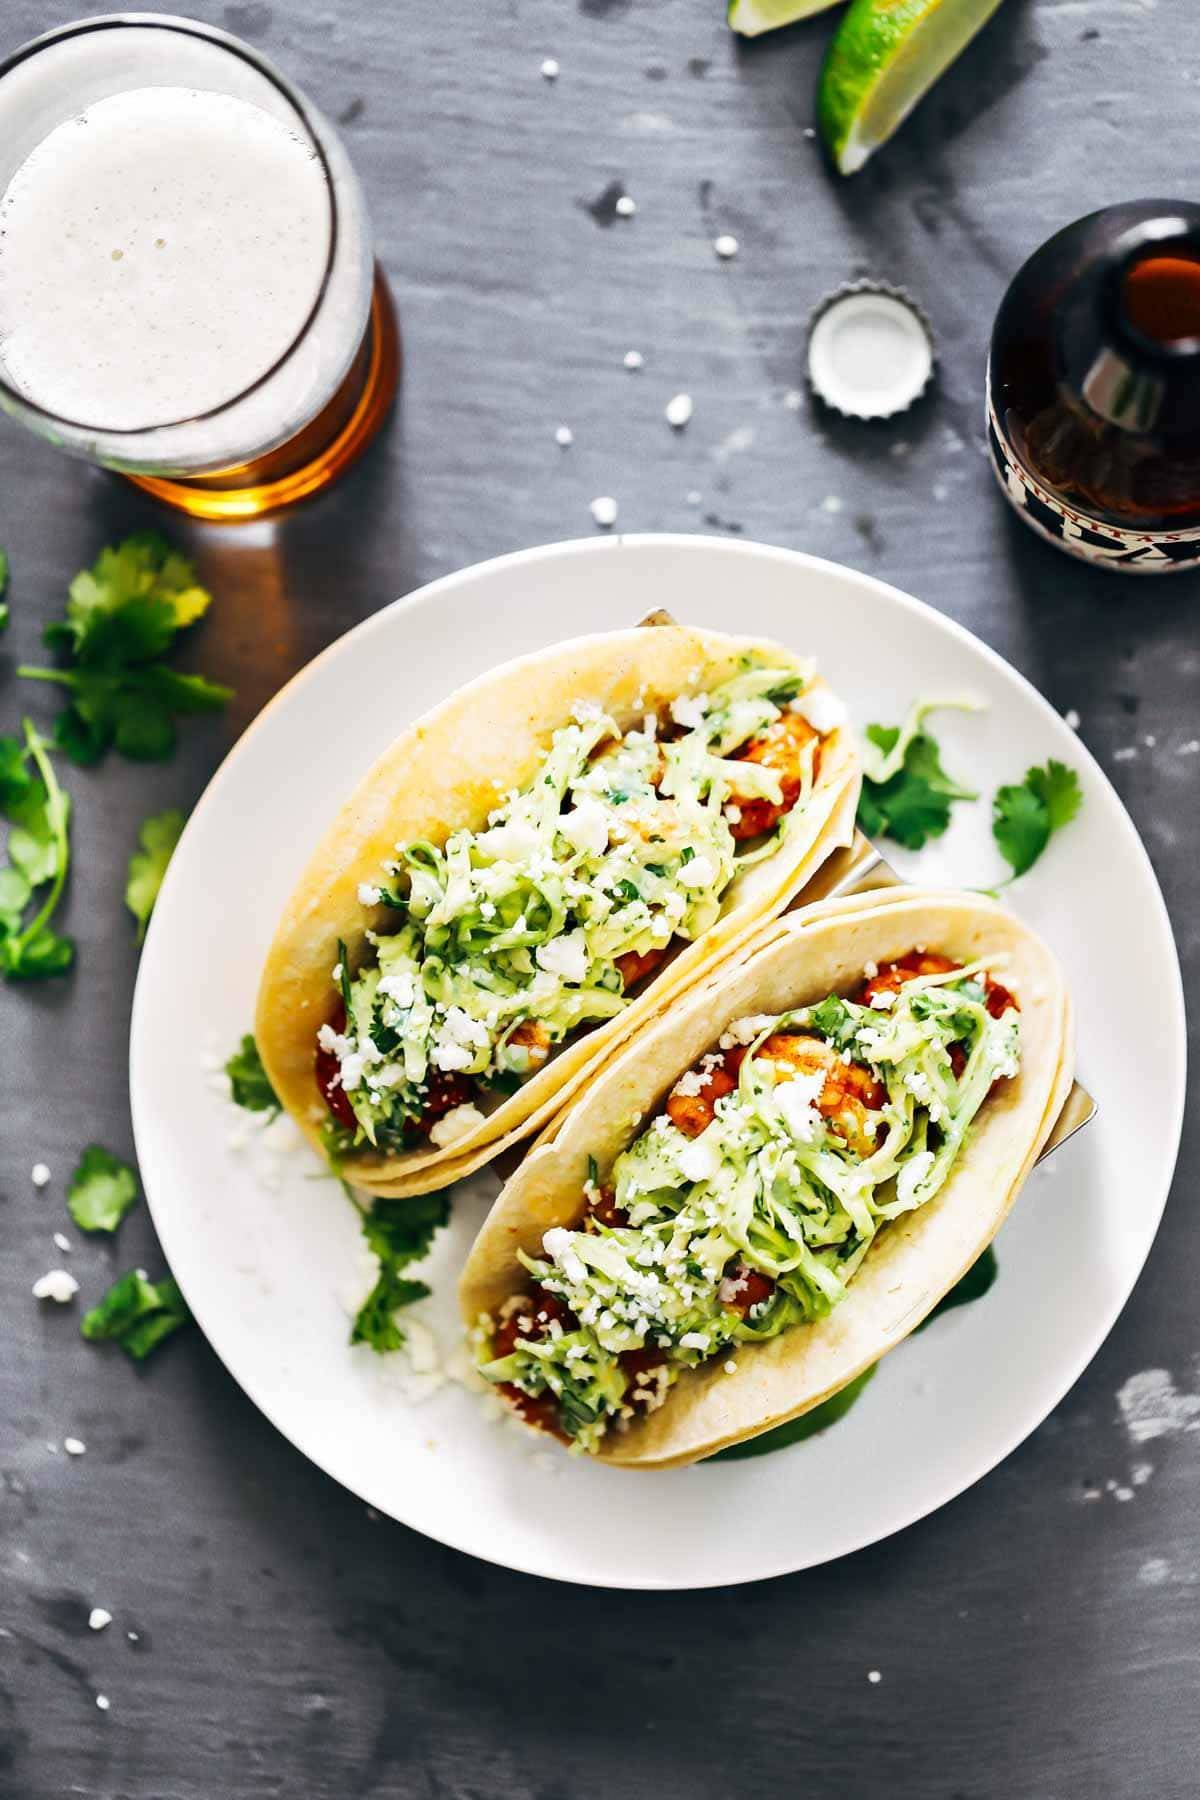 Spicy Shrimp Tacos With Garlic Cilantro Lime Slaw Recipe Pinch Of Yum